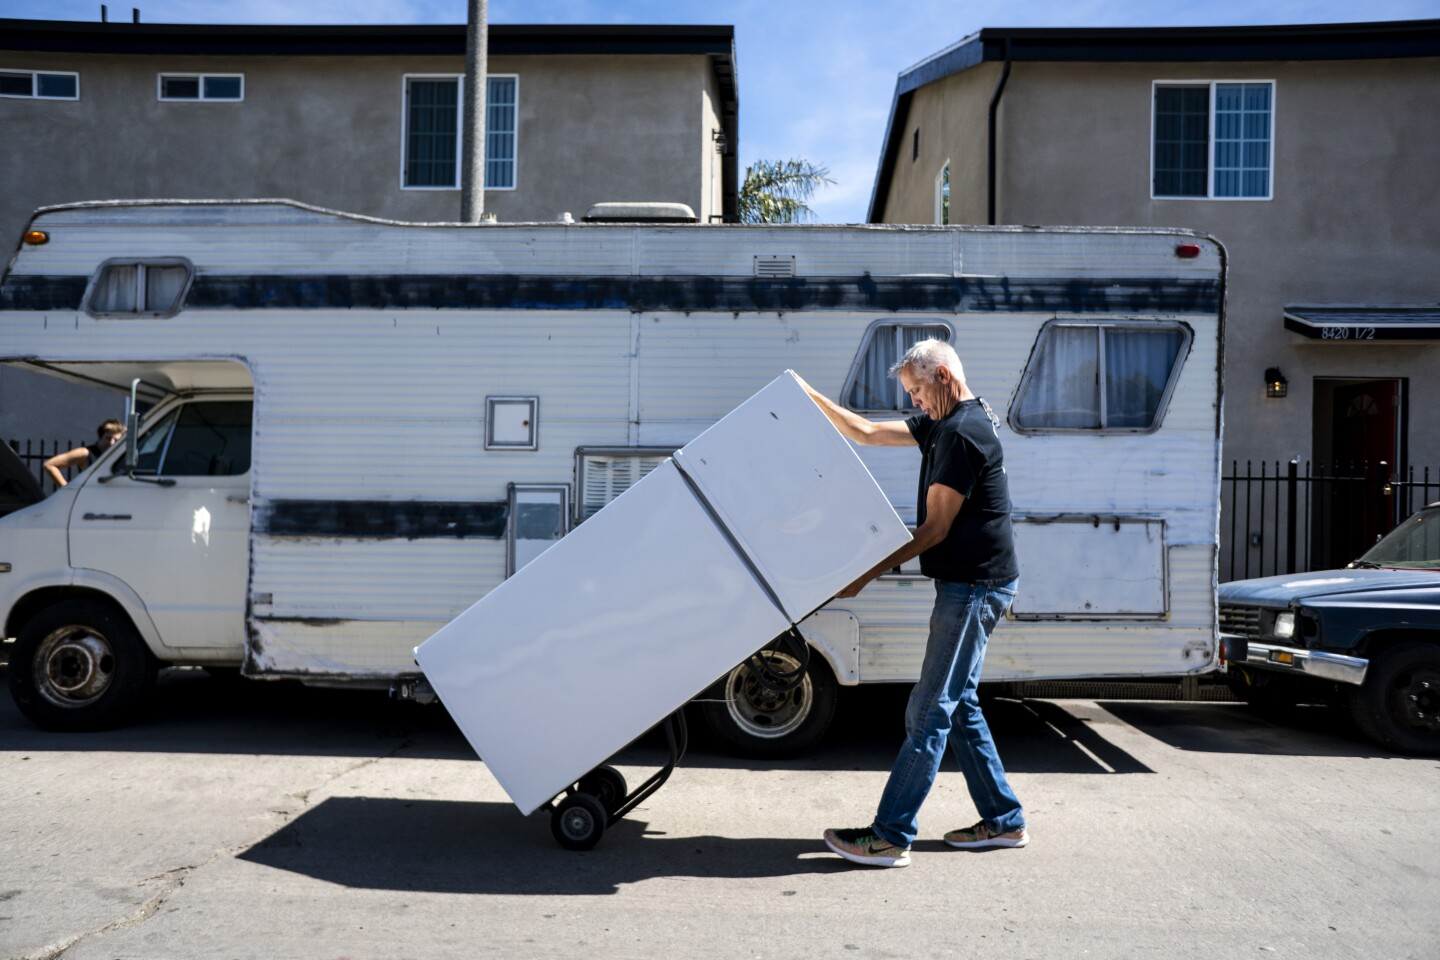 LOS ANGELES, CA - MARCH 06: John Betz rolls a refrigerator down Wall street as he and Heidi Roberts (not pictured) setup two duplex housing units in south Los Angeles on March 06, 2018 in Los Angeles, California. The units, will be rented out to homeless people in what is called shared housing. (Kent Nishimura / Los Angeles Times)